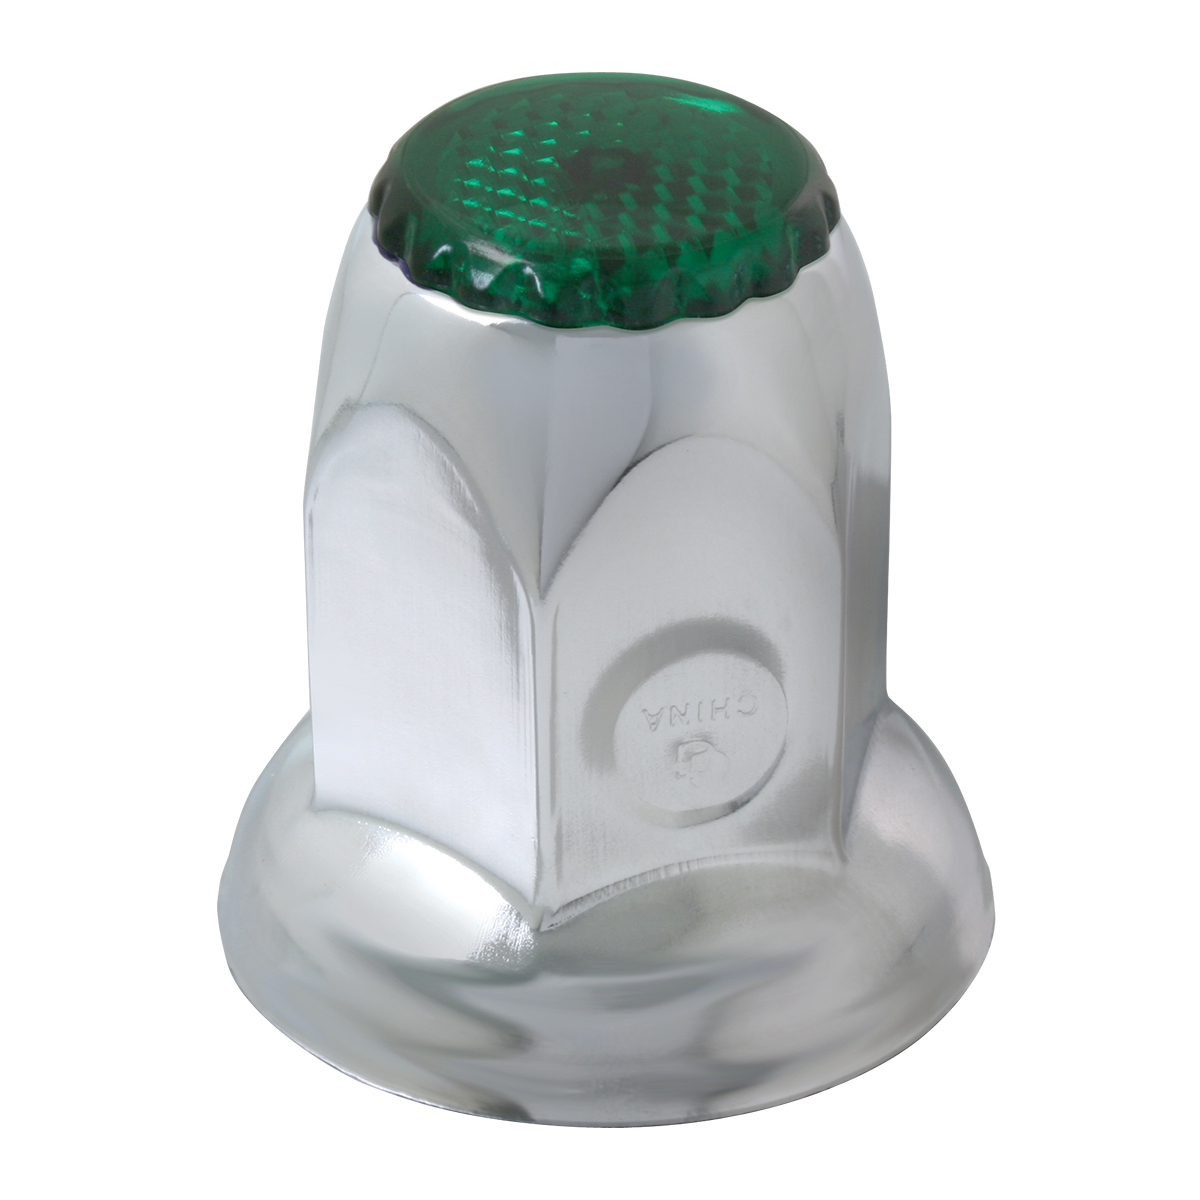 10492 Chrome Steel Green Reflector Push-On Lug Nut Cover w/ Flange